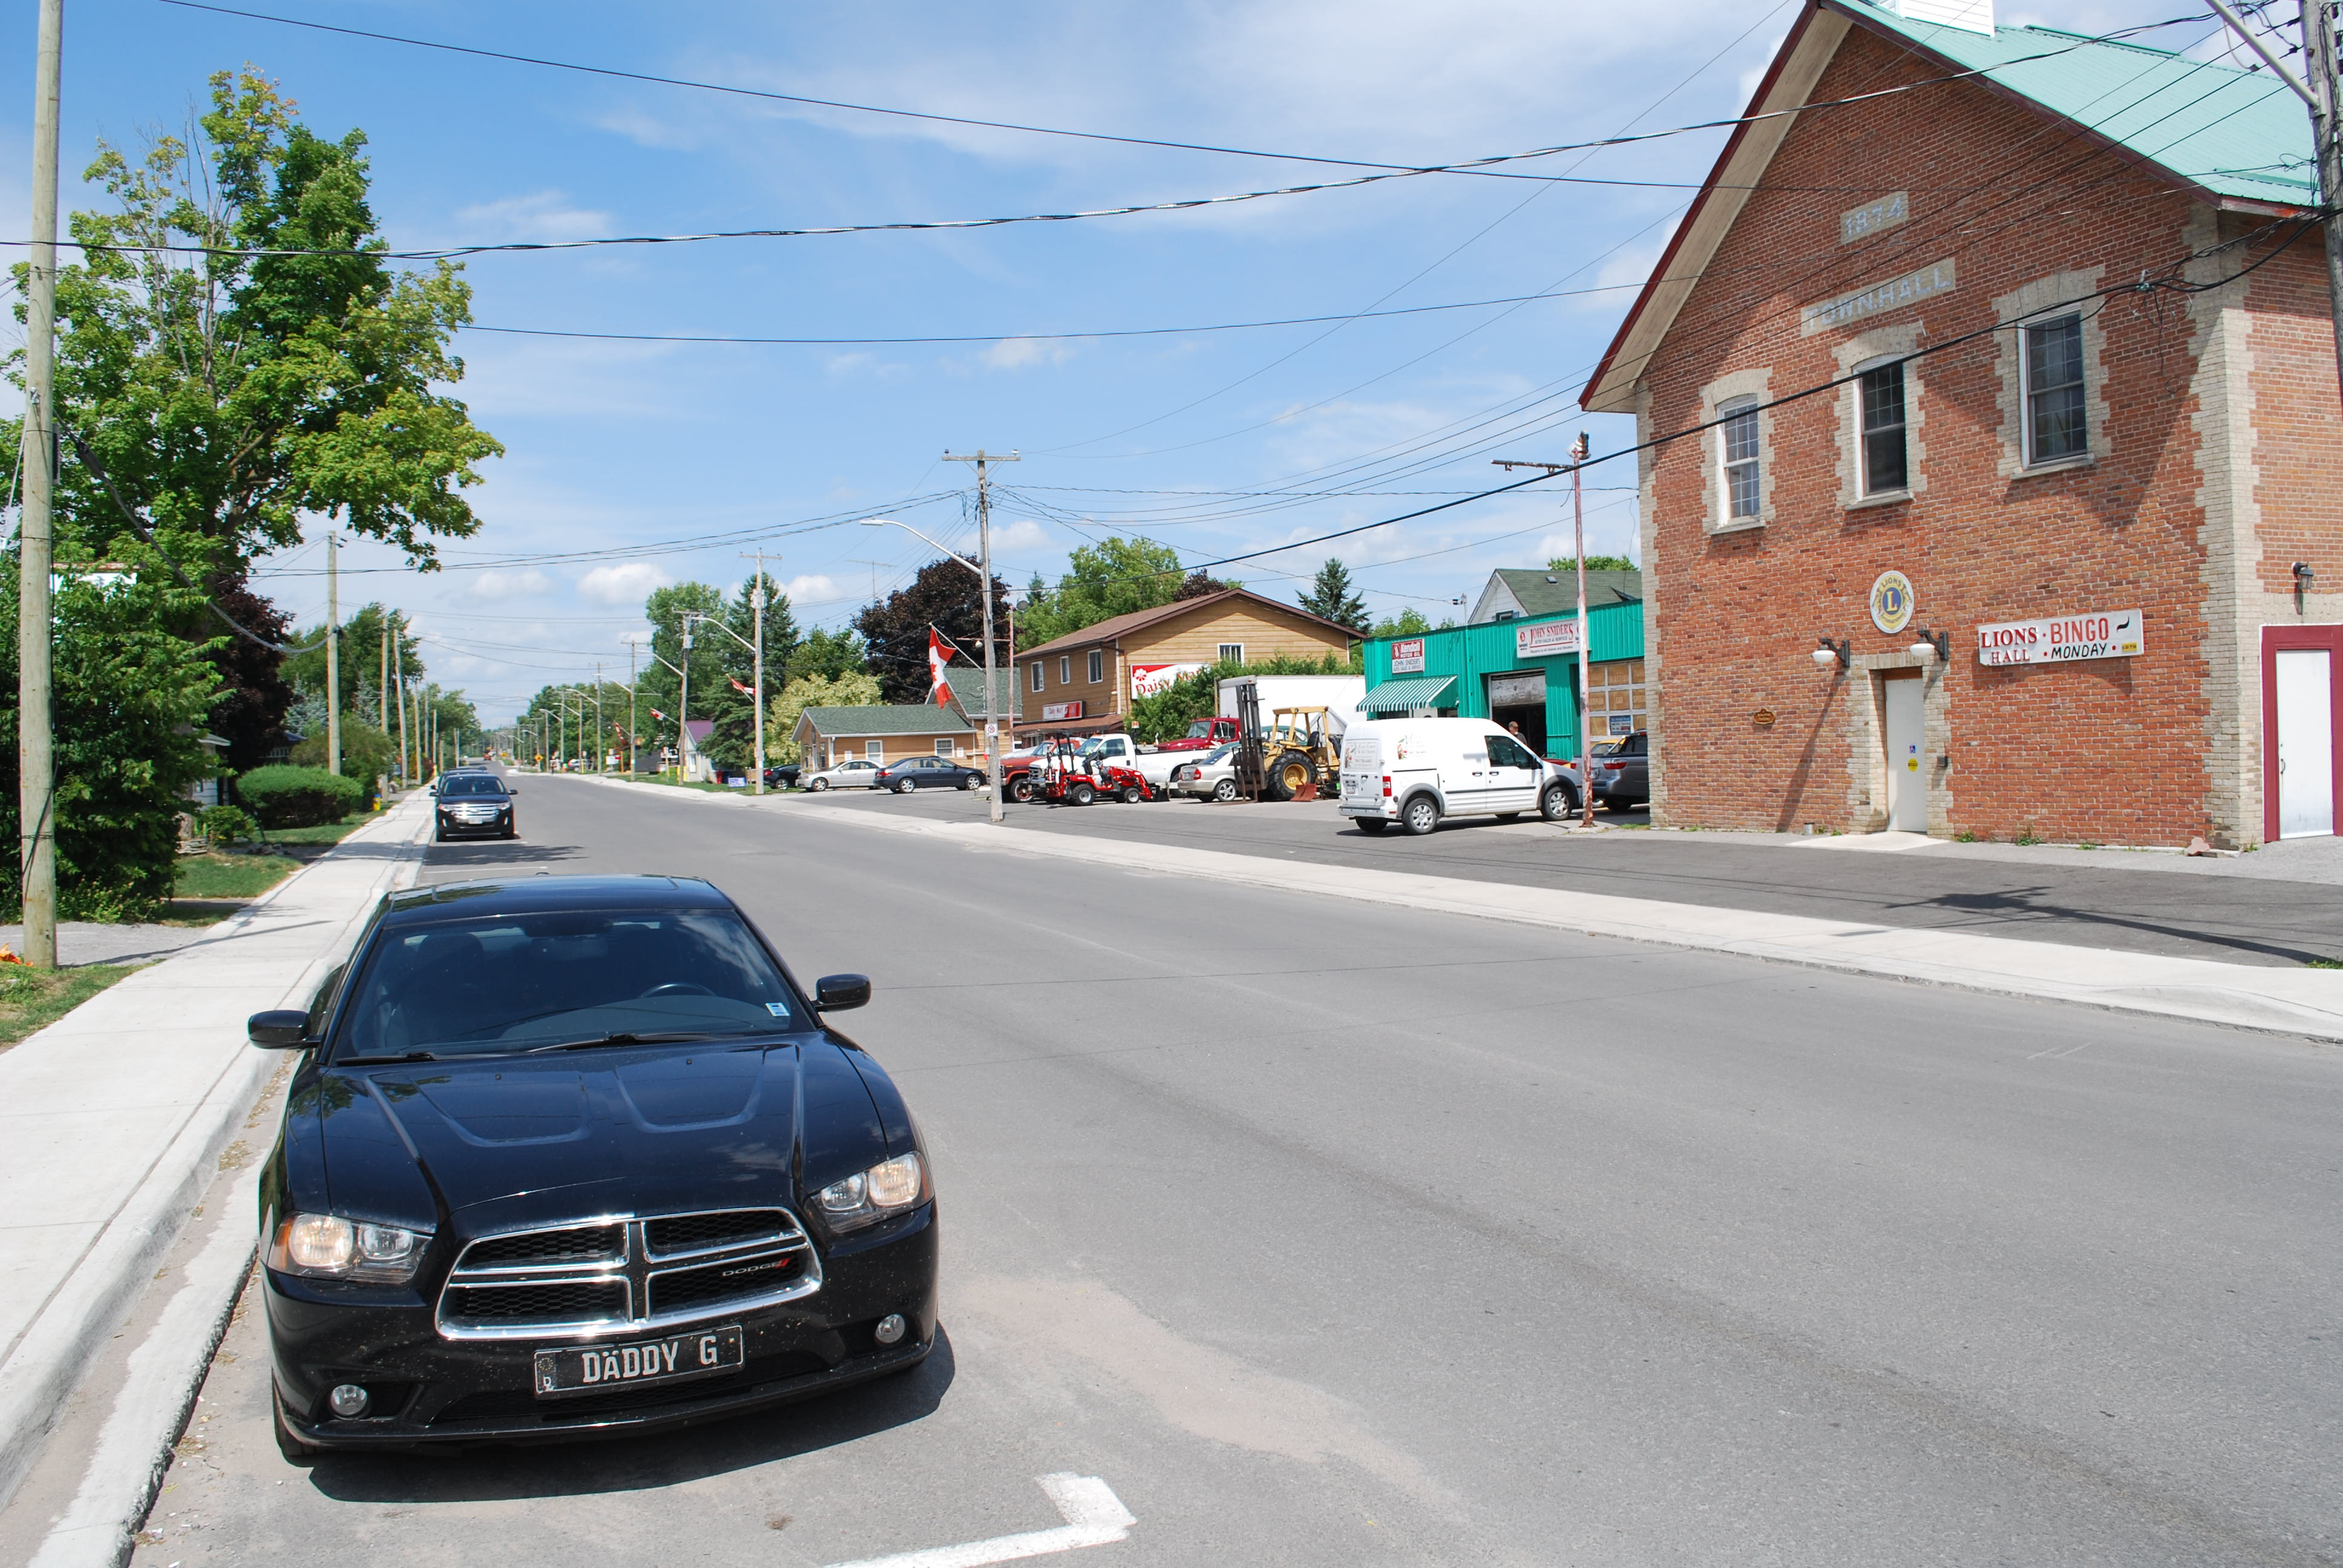 Road Trip Bobcaygeon to Kingston in a Canadian-Built Charger